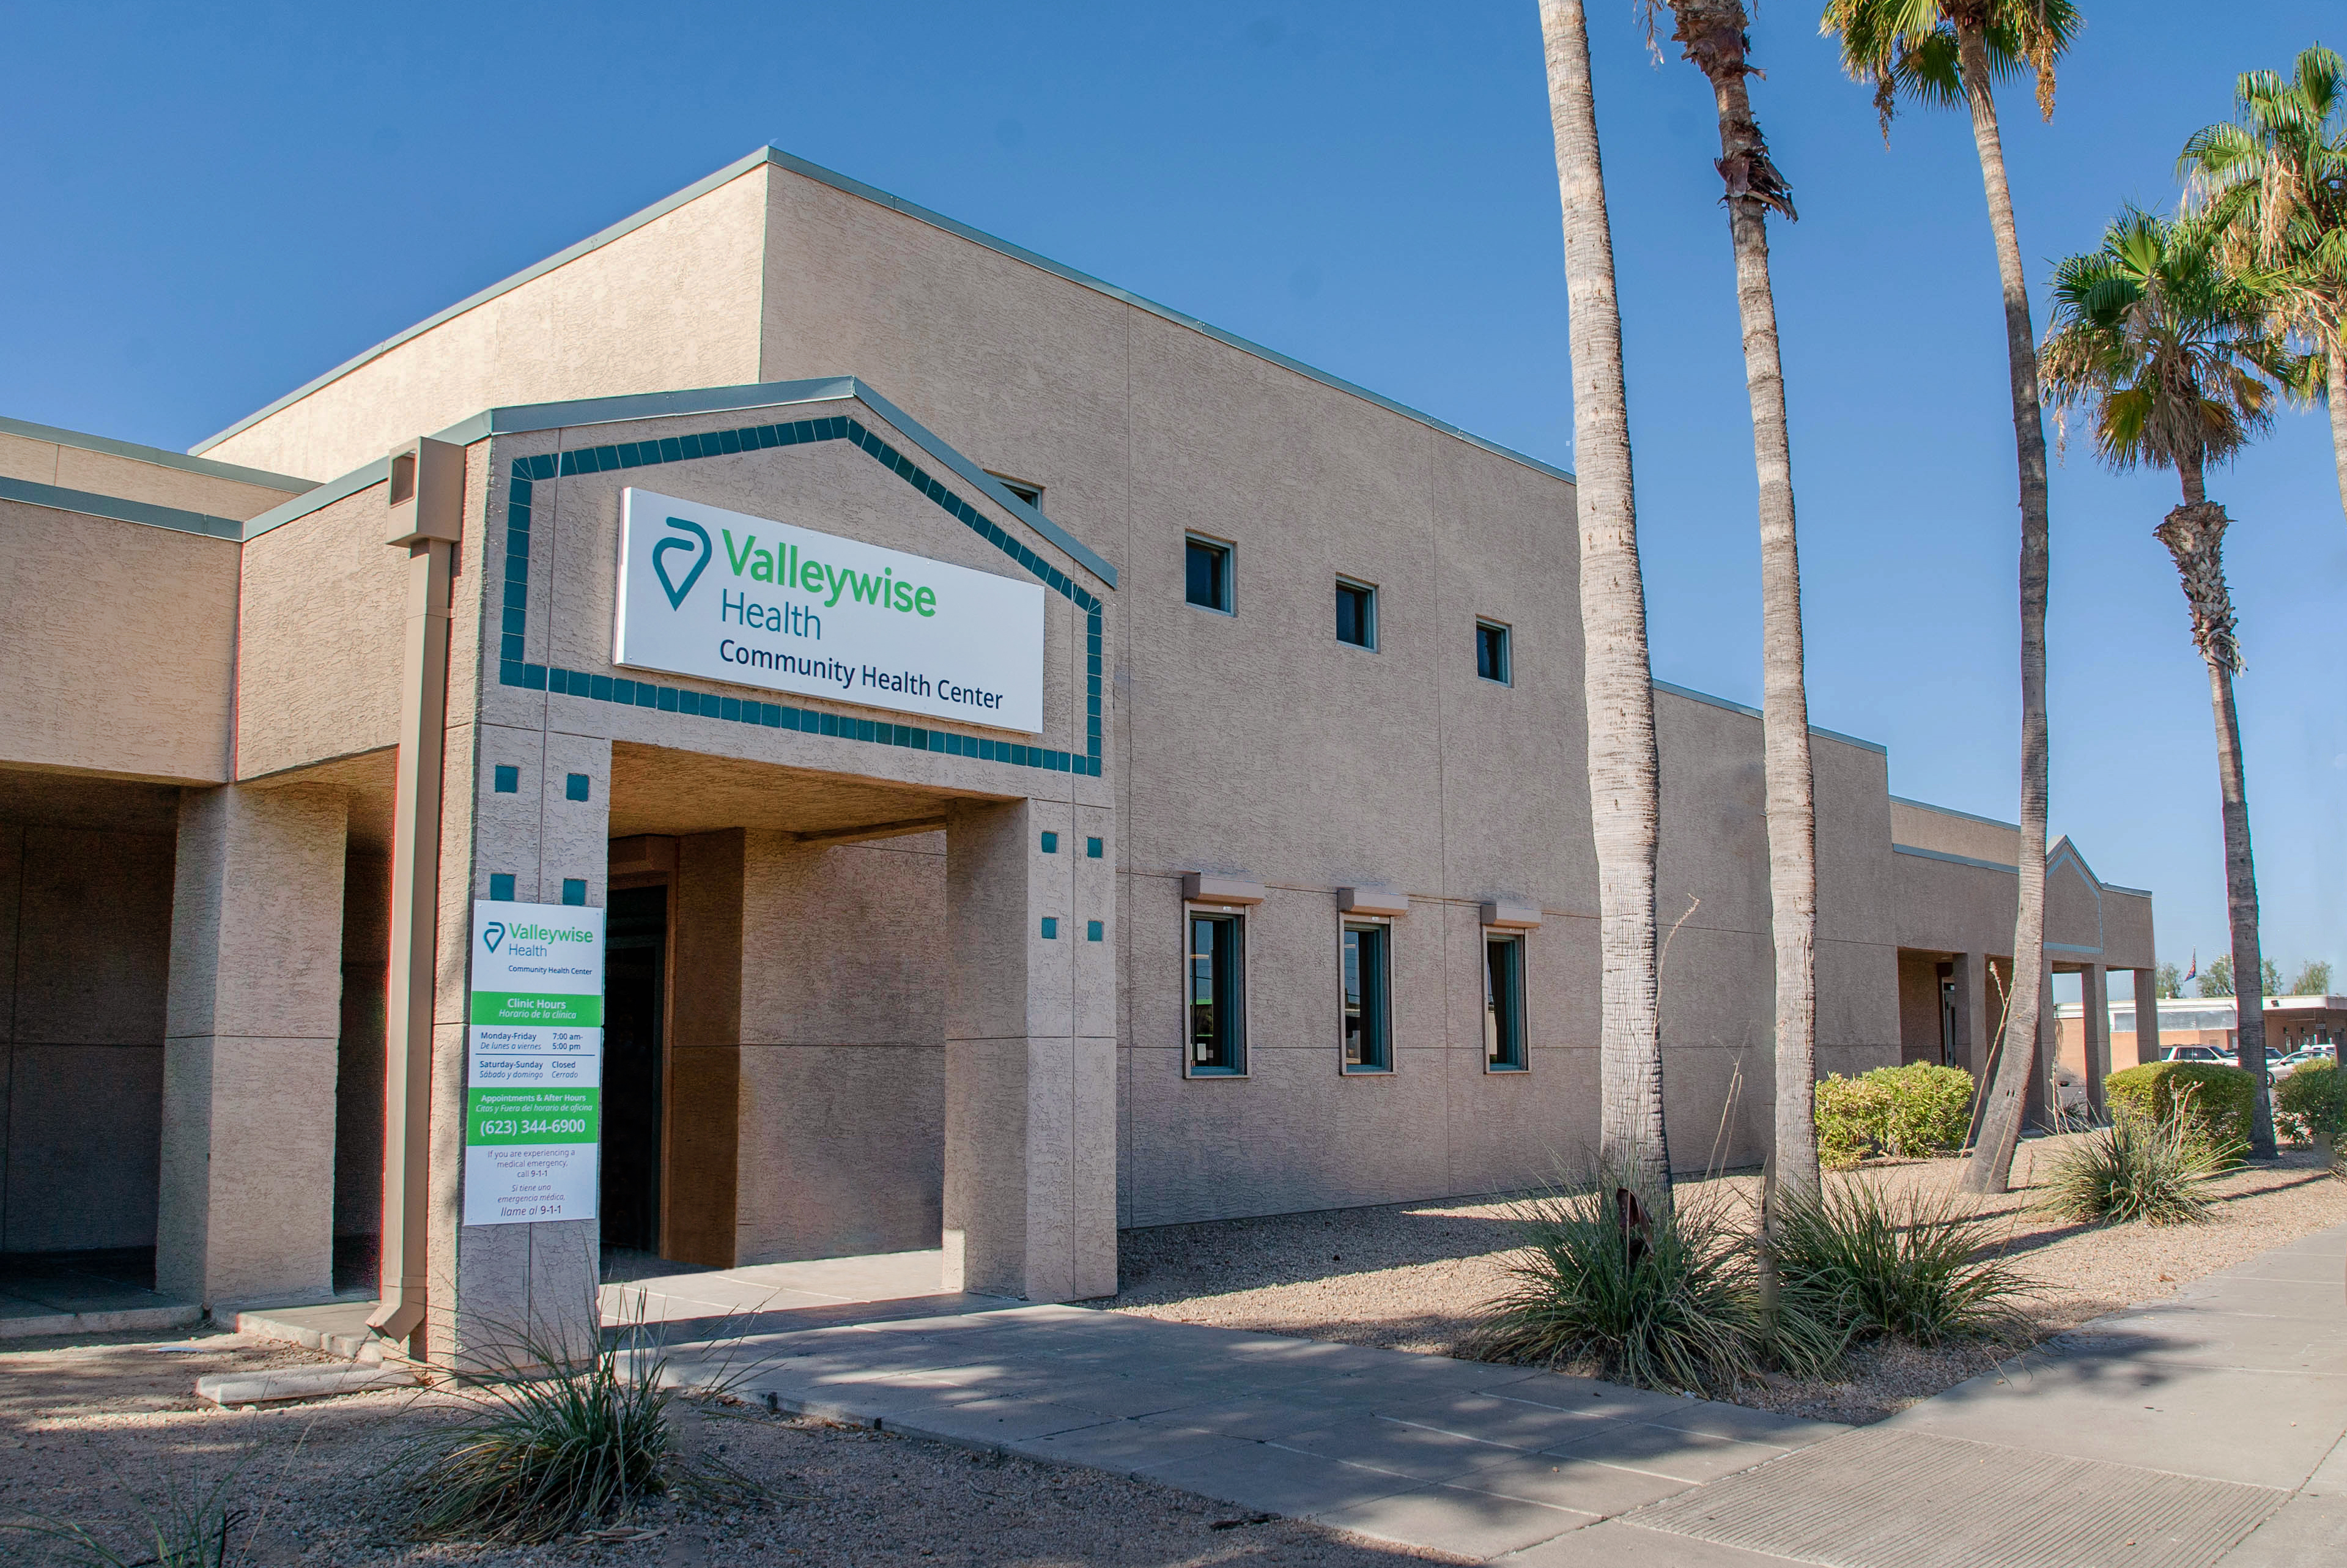 Valleywise Community Health Center Maryvale